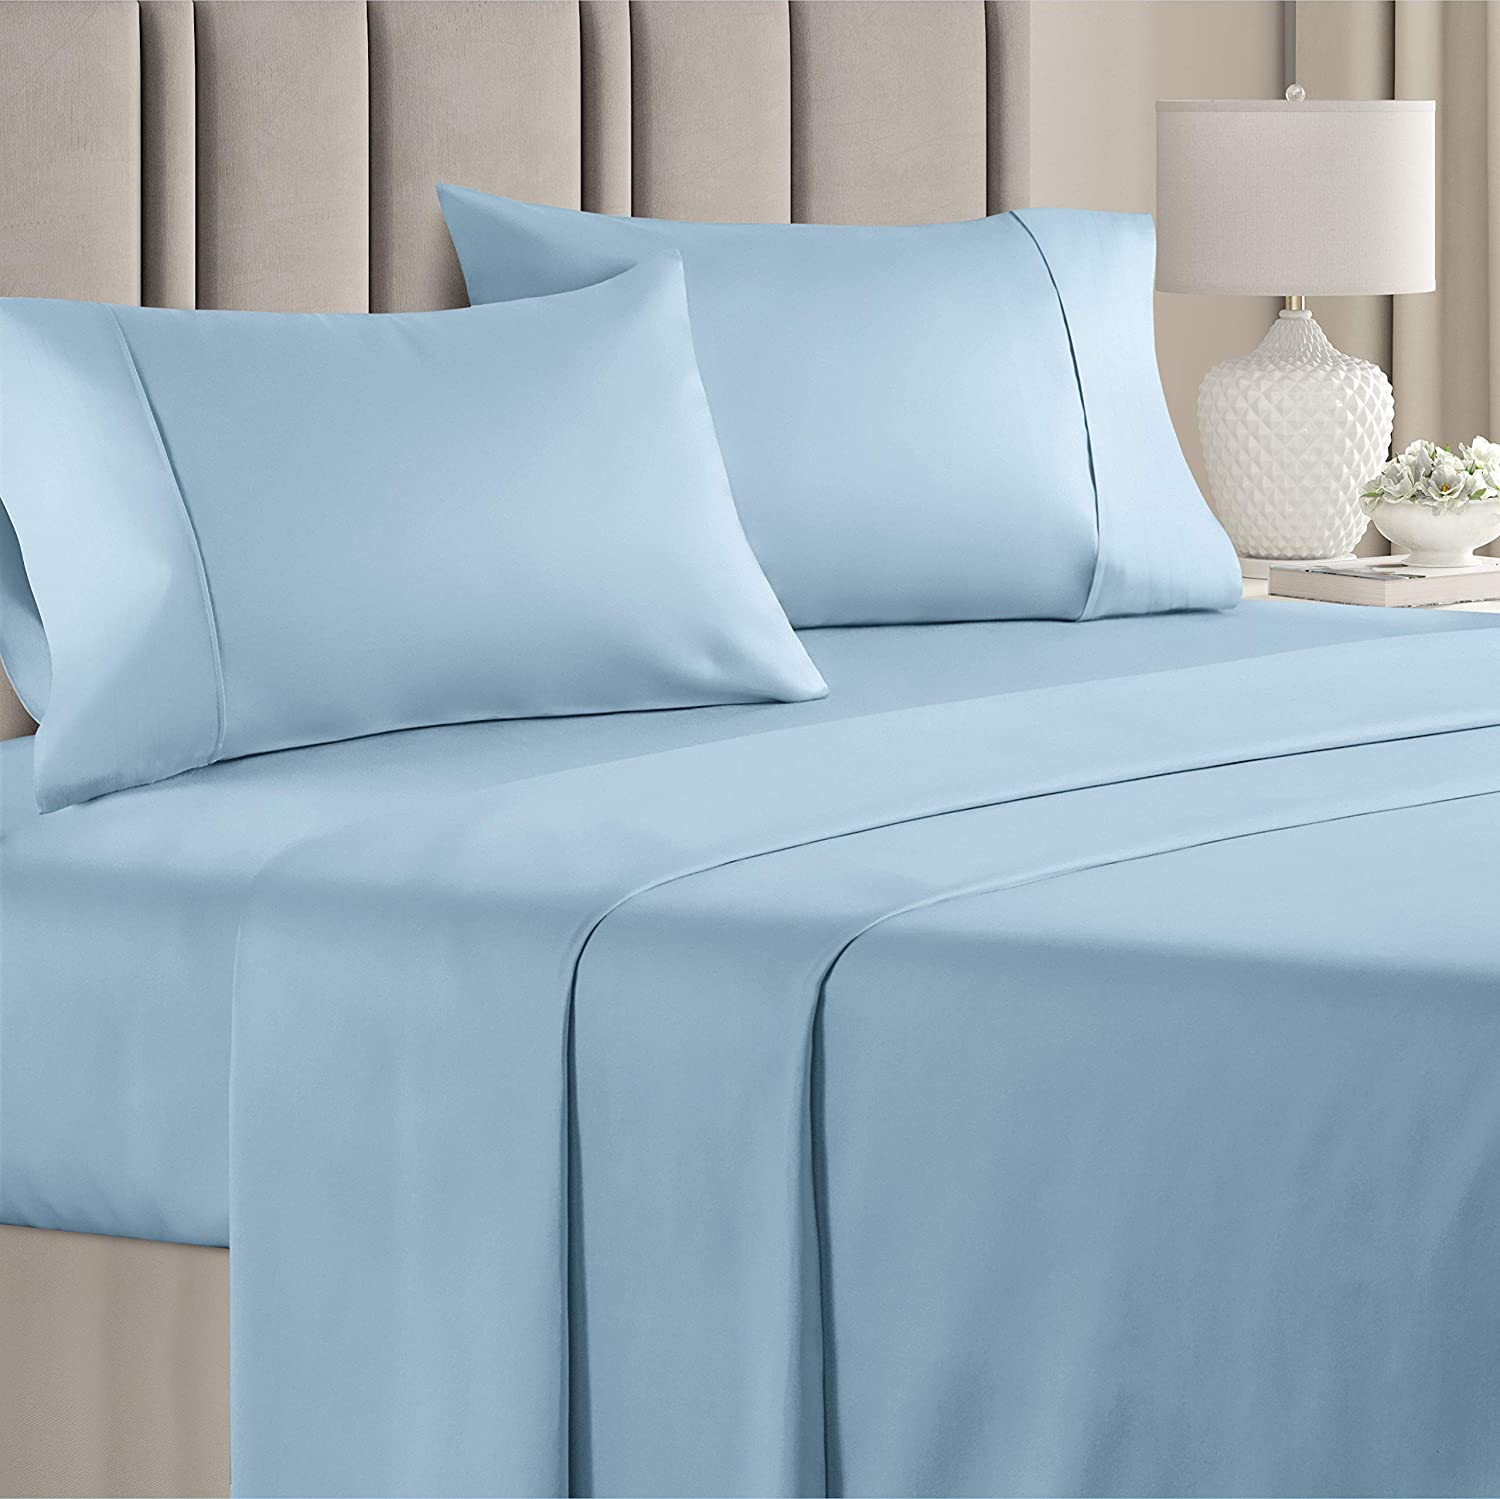 100% Cotton Cal King Sheets Blue (4pc) Silky Smooth, Cooling 400 Thread Count Long Staple Combed Cotton Cal King Sheet Set – 400TC High Thread Count Cal King Sheets Cal King Bed Sheets Cotton